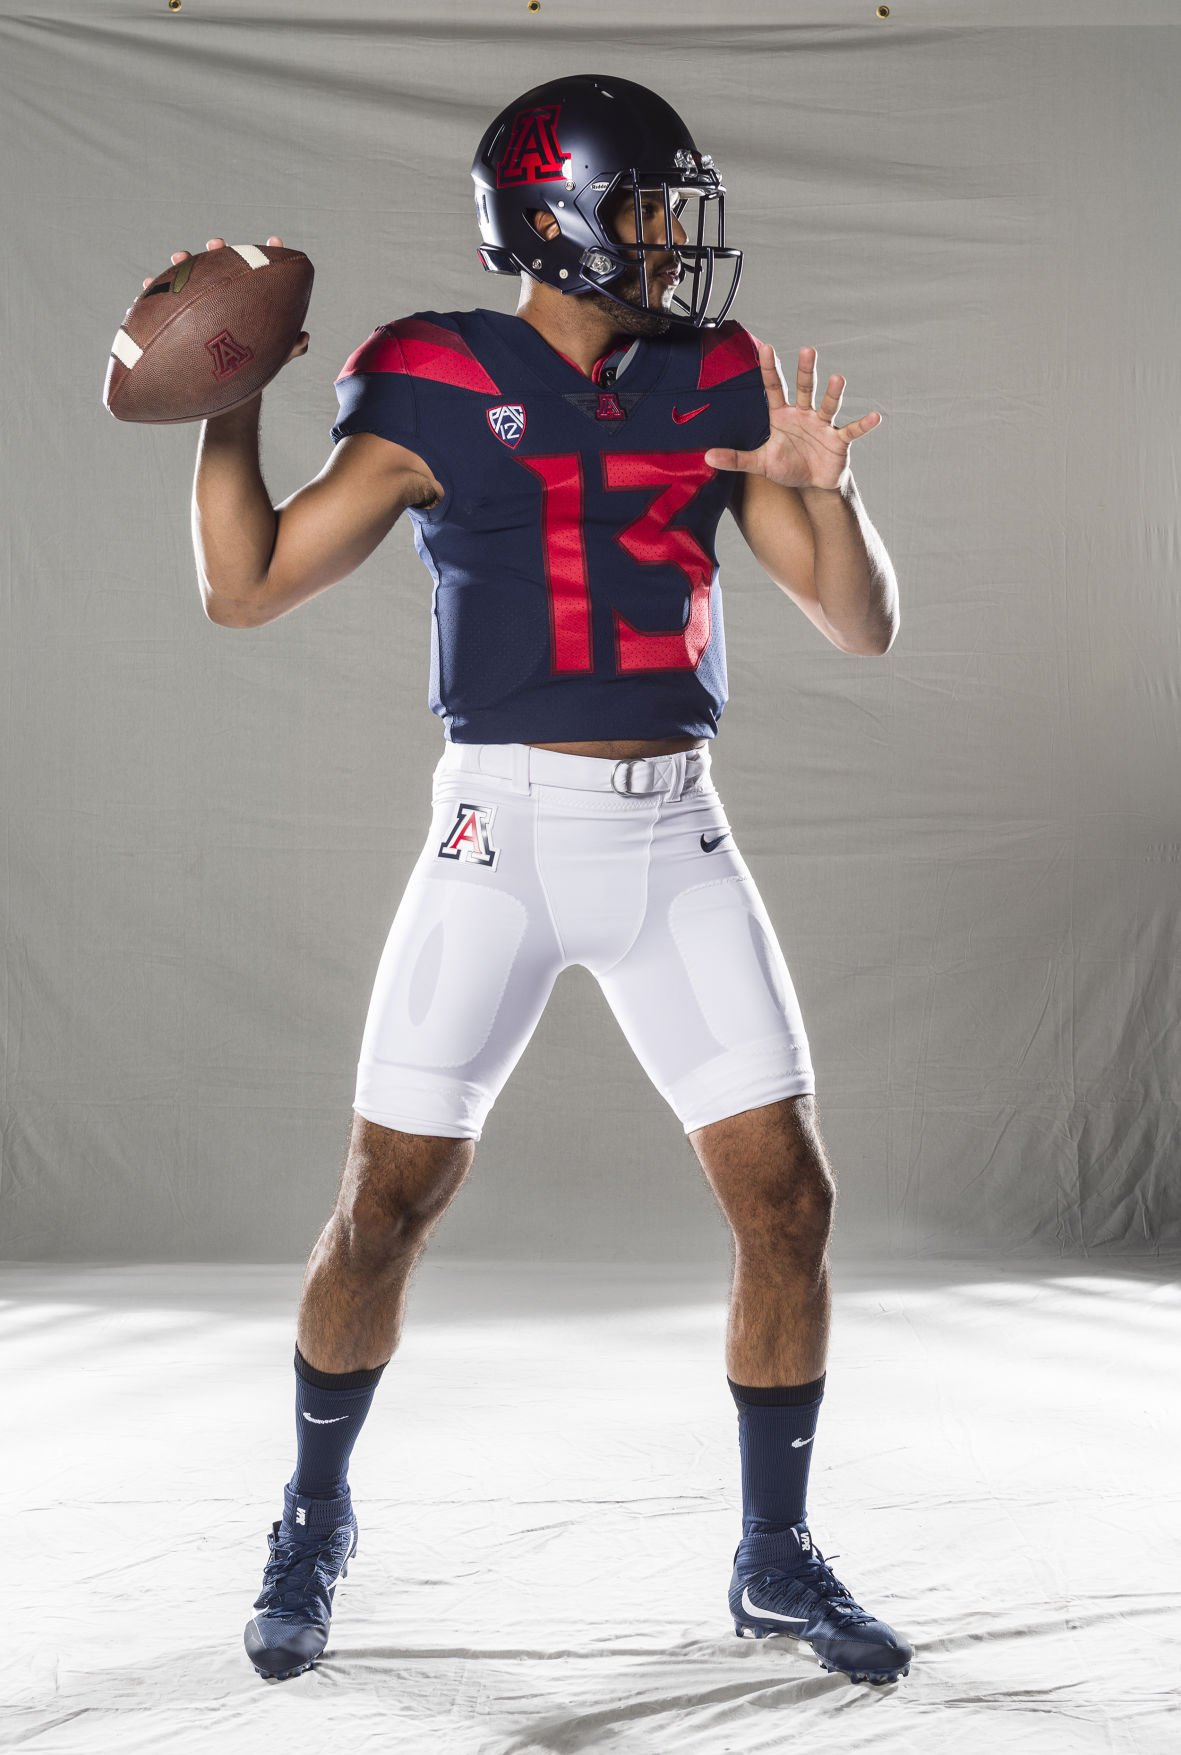 big sale 5cb36 9eaf8 Arizona Wildcats' new uniforms have fair share of fans, haters ...